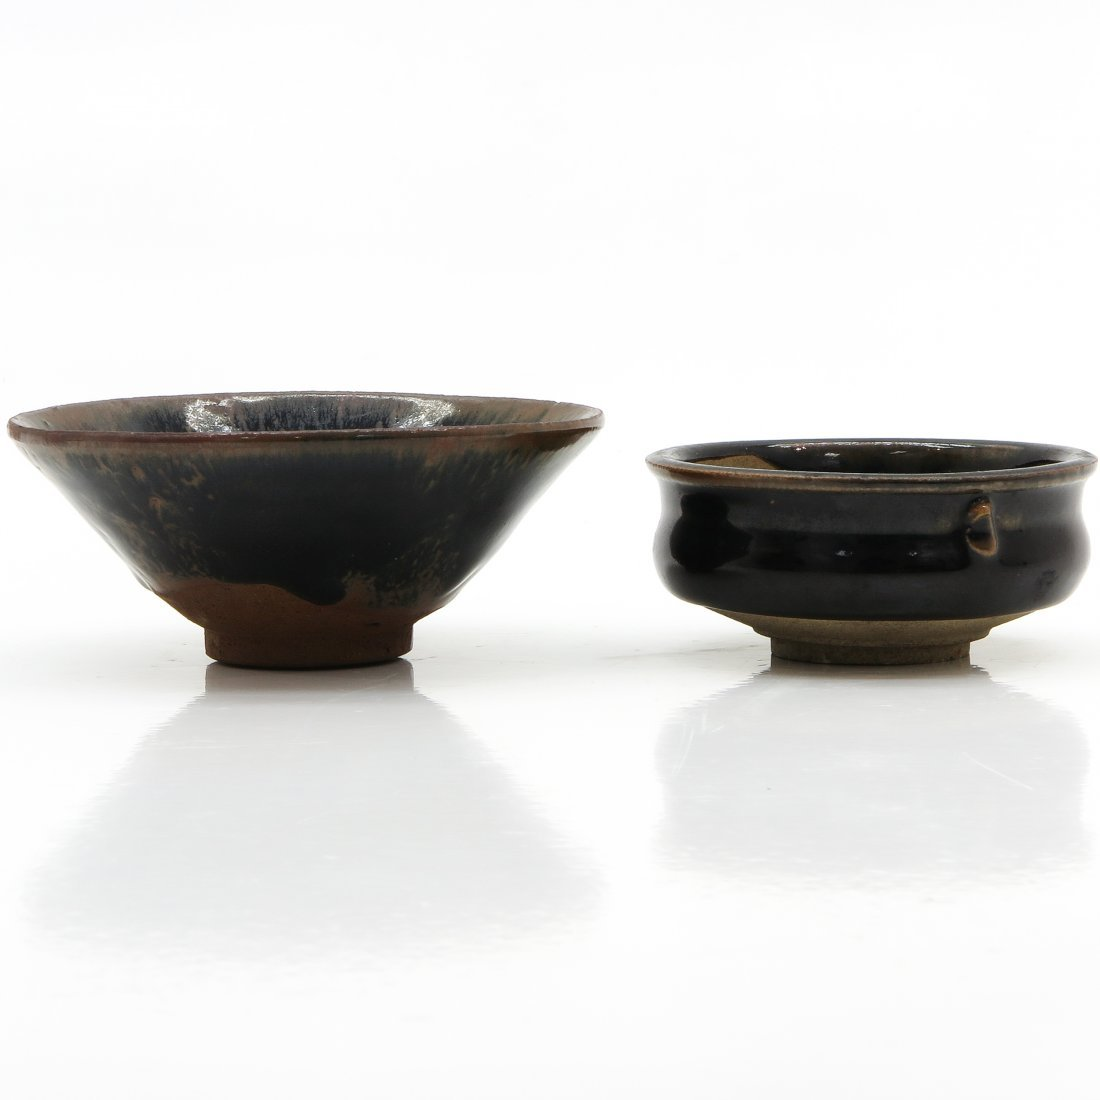 Lot of Song Period Bowls